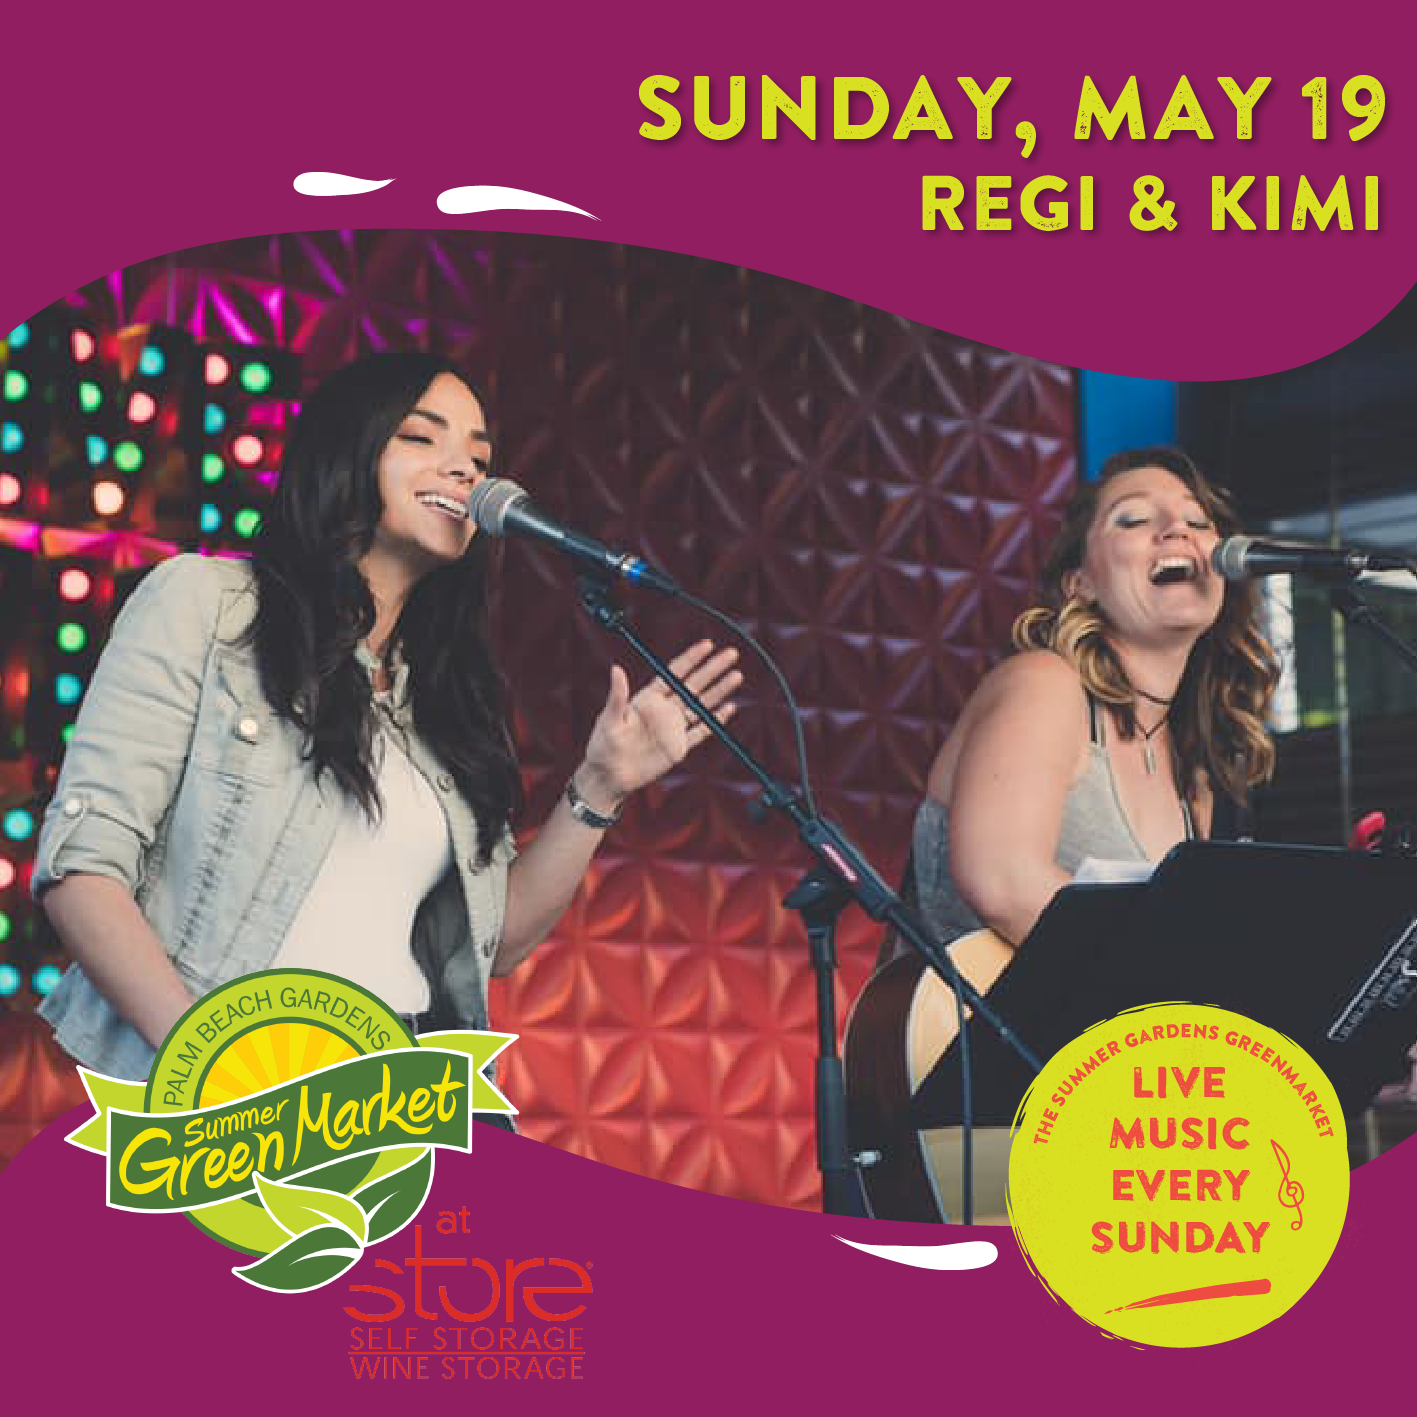 Regi and Kimi- Featured artists for the Sunday, May 19th GreenMarket.